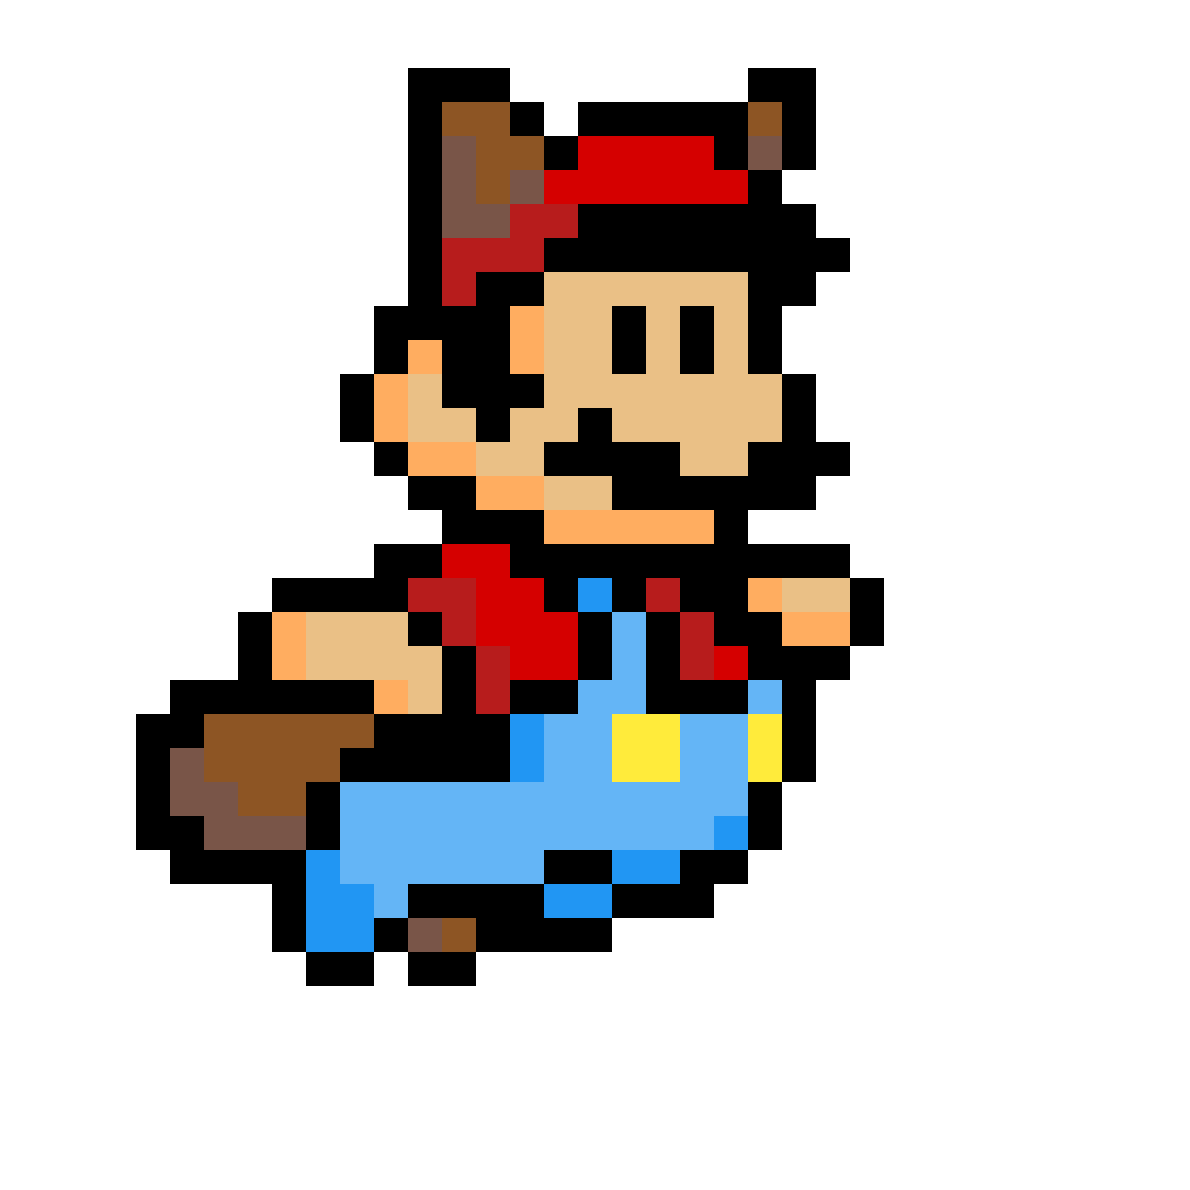 Pixilart Mario From Super Mario Bros 3 By Unkn0wnartist